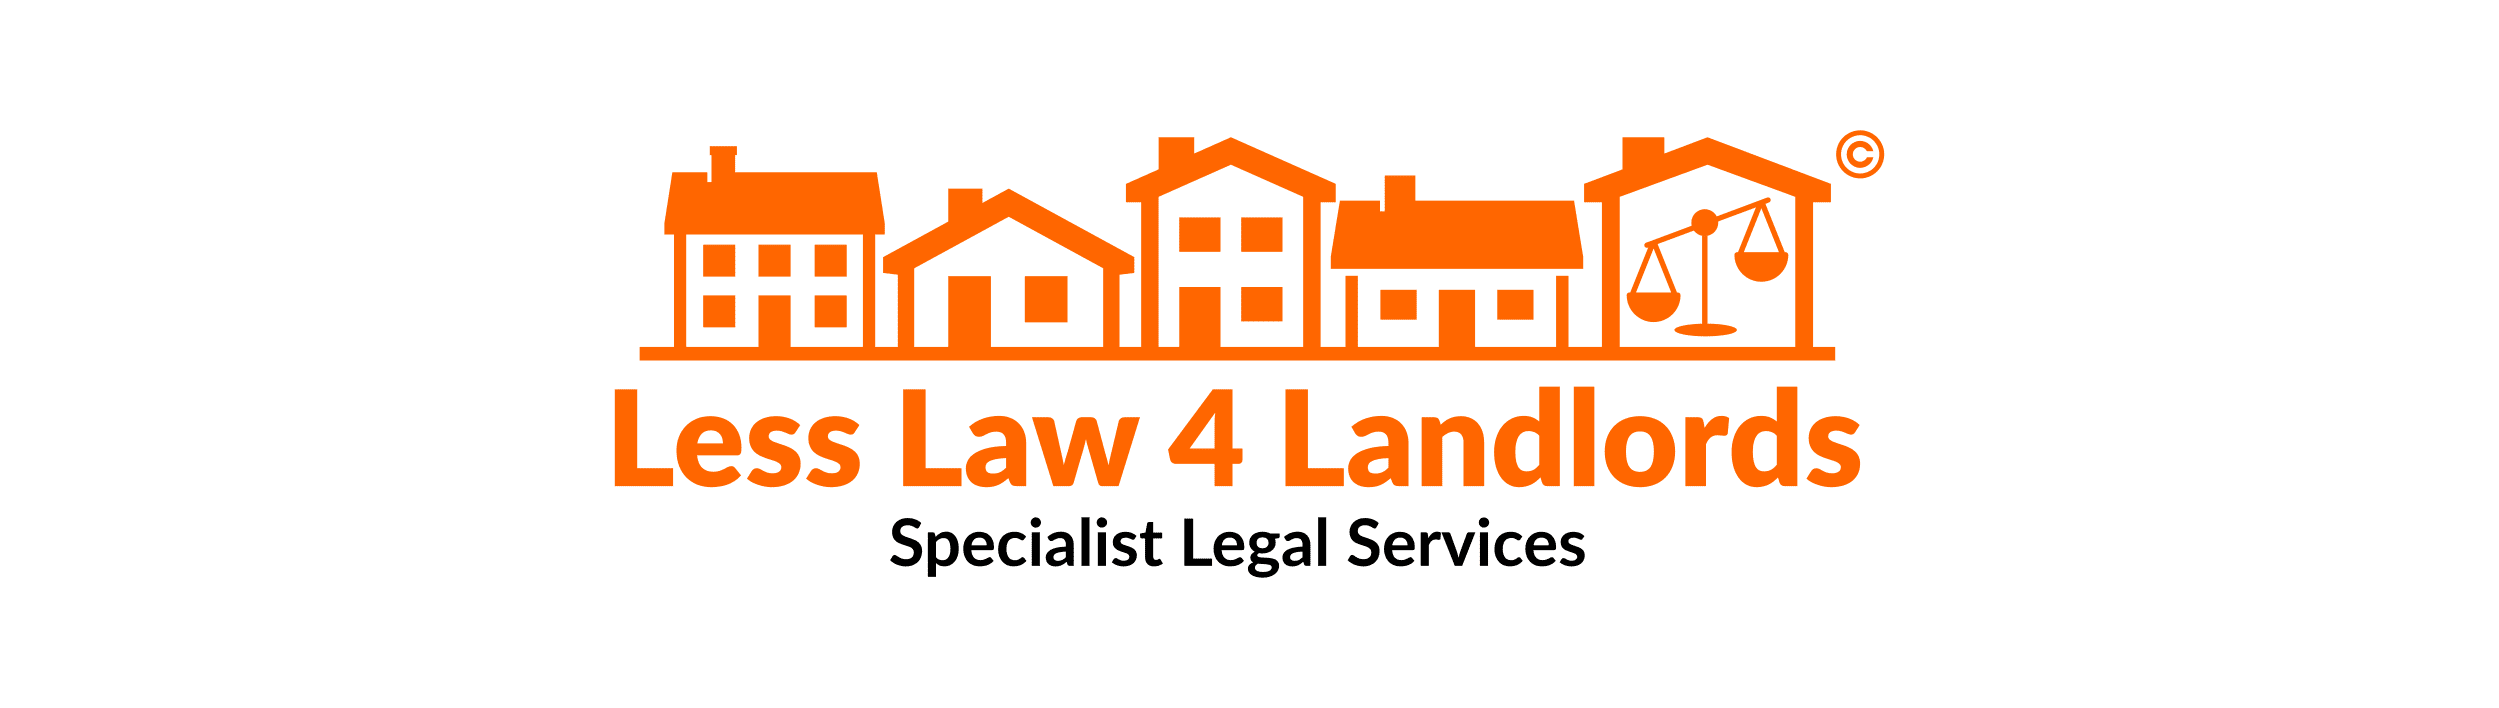 Less Law 4 Landlords